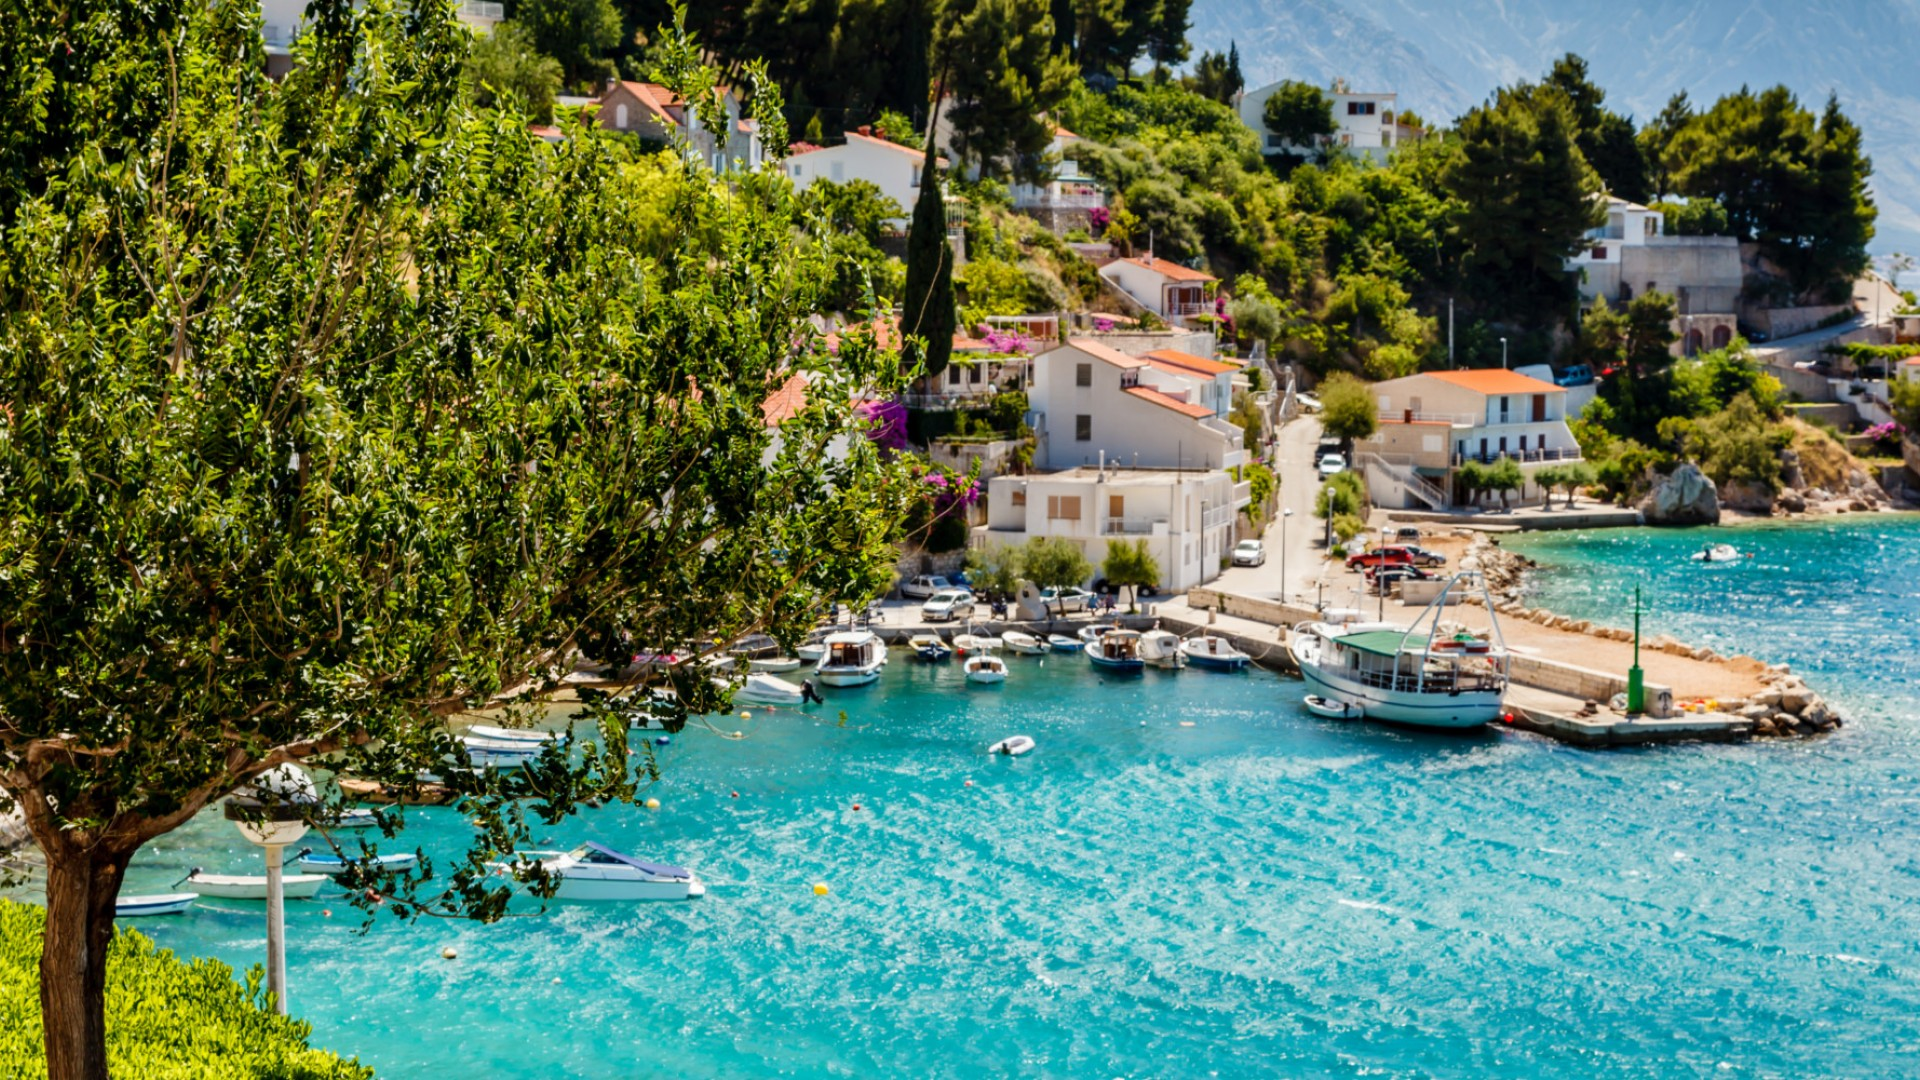 small town by the sea croatia